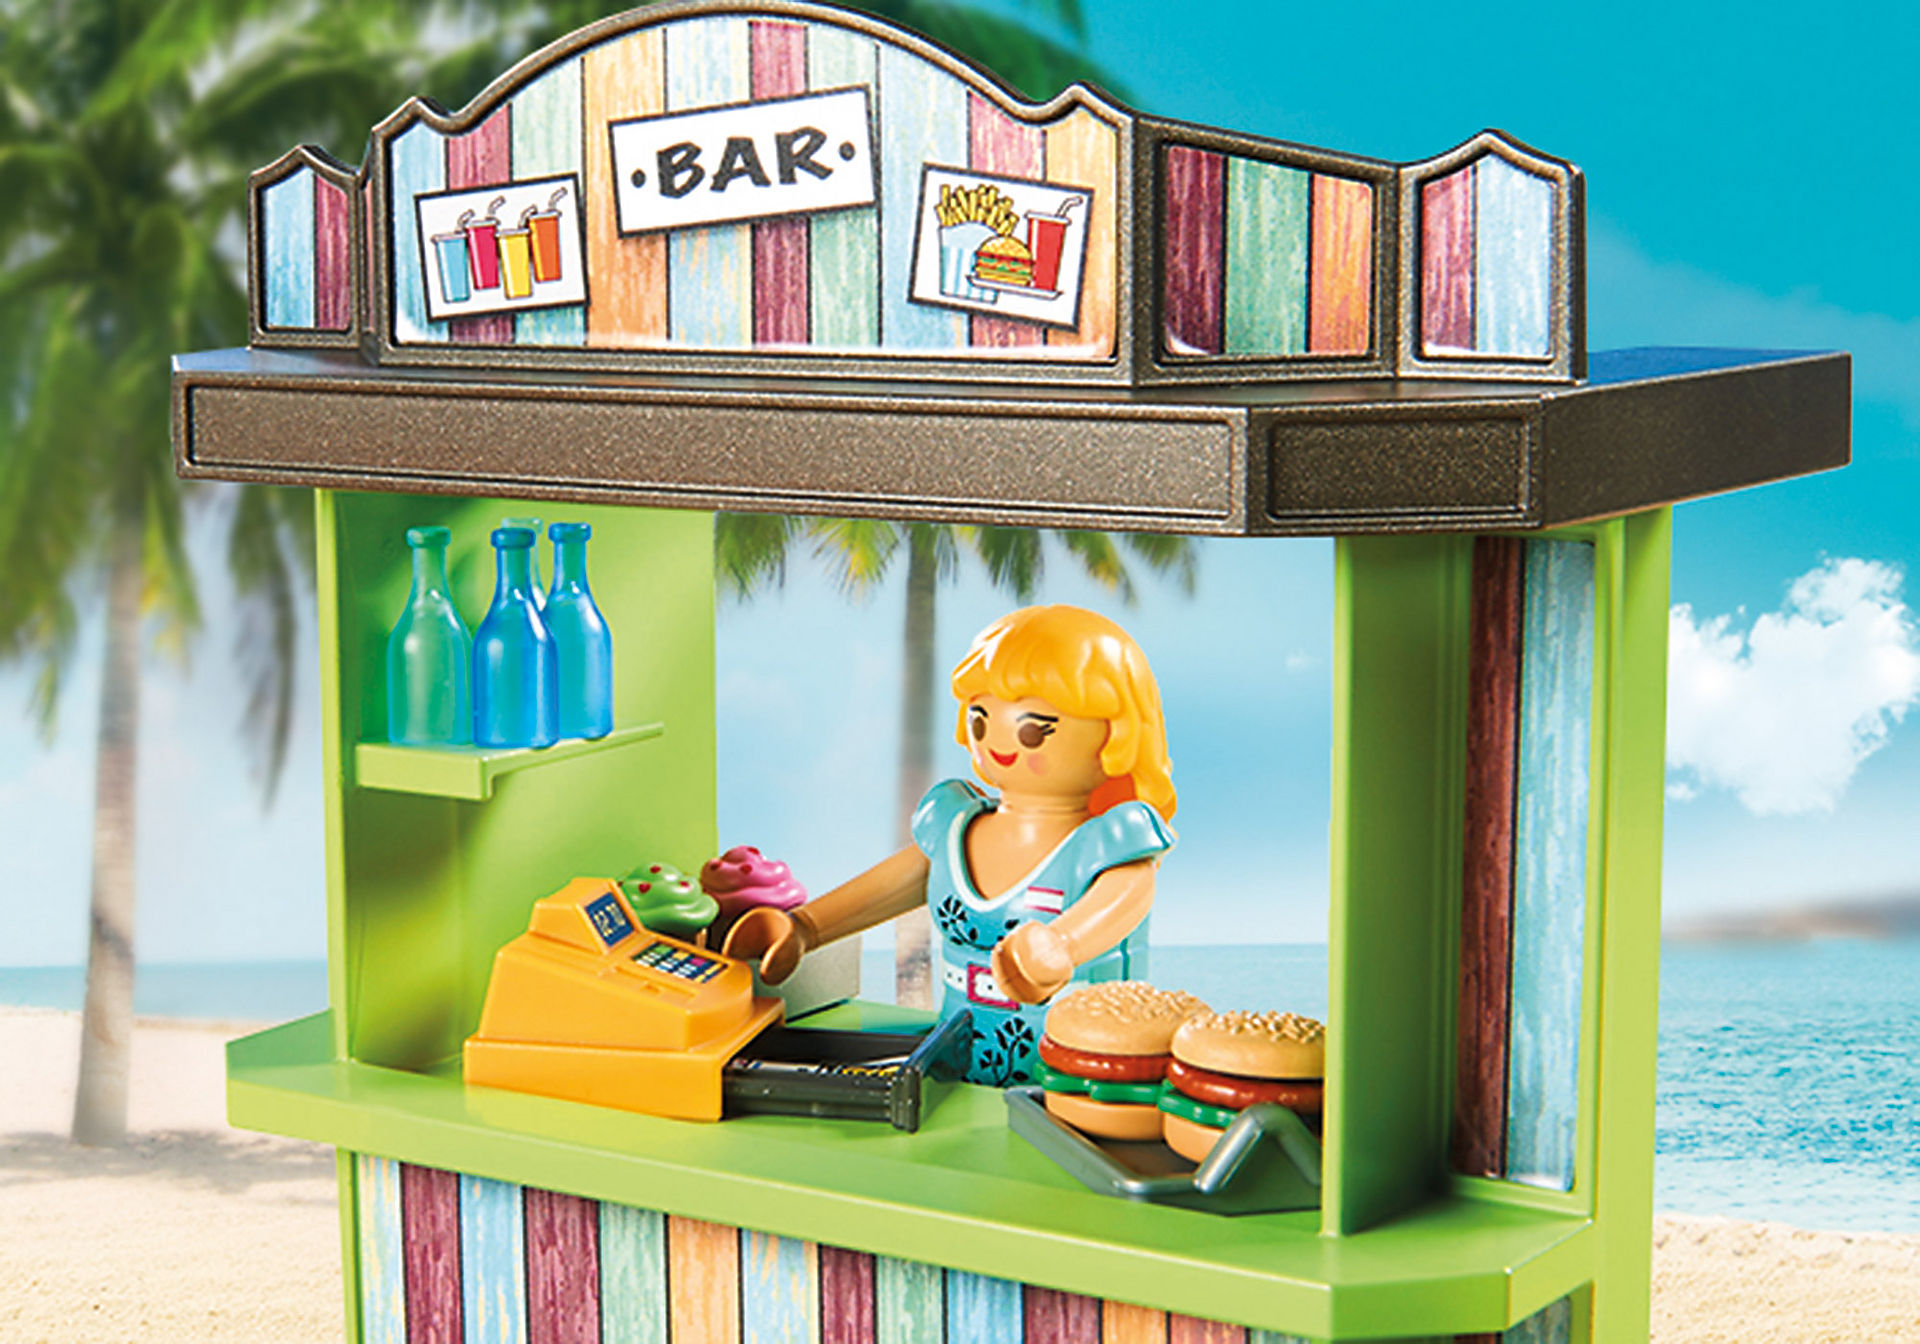 70437 Beach Snack Bar zoom image4